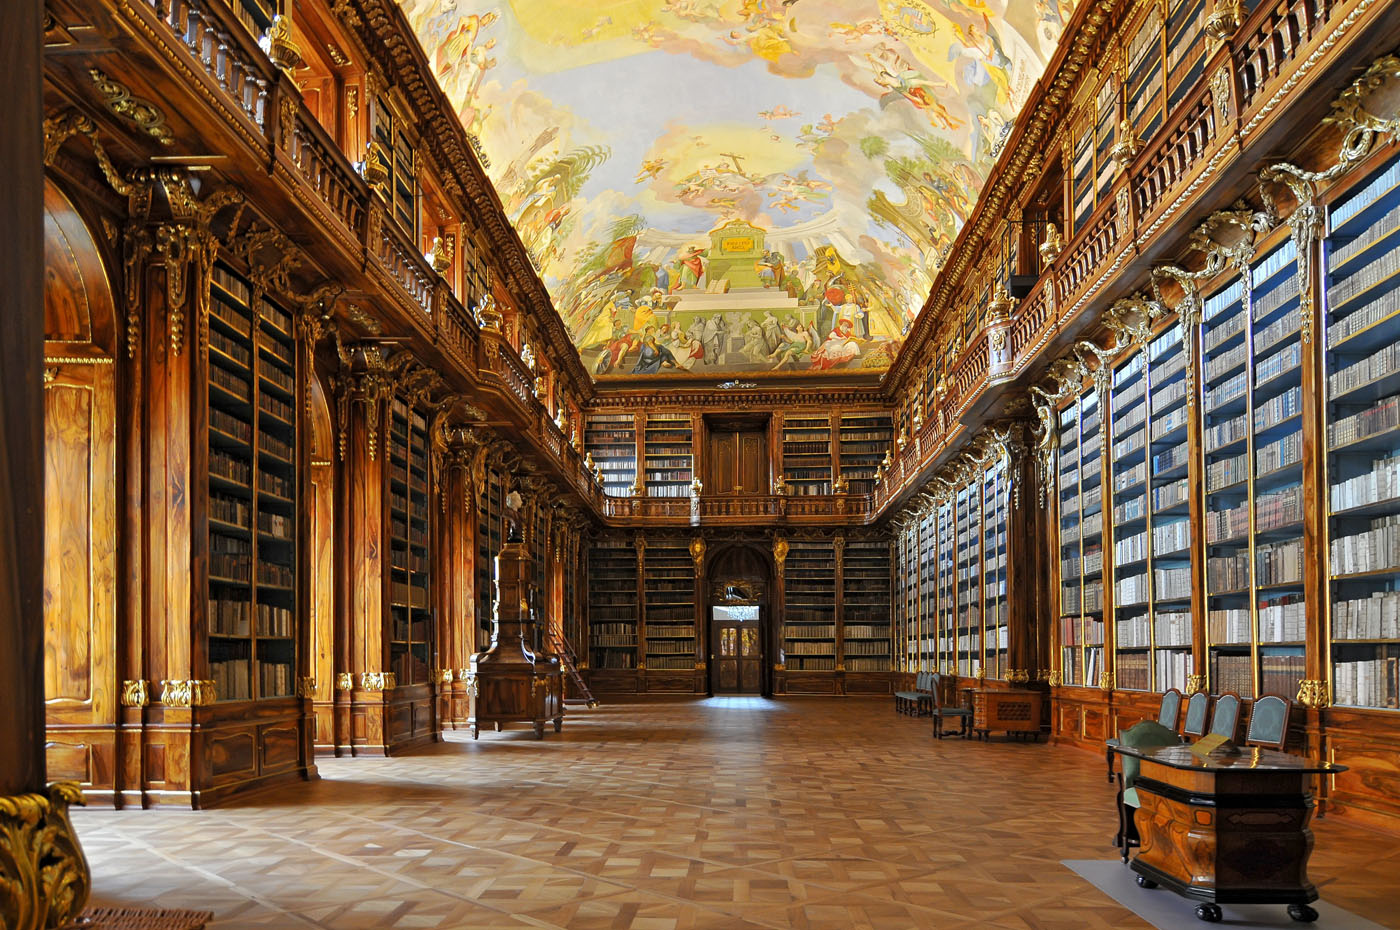 Historical library of Strahov Monastery in Prague. Praga, República Checa